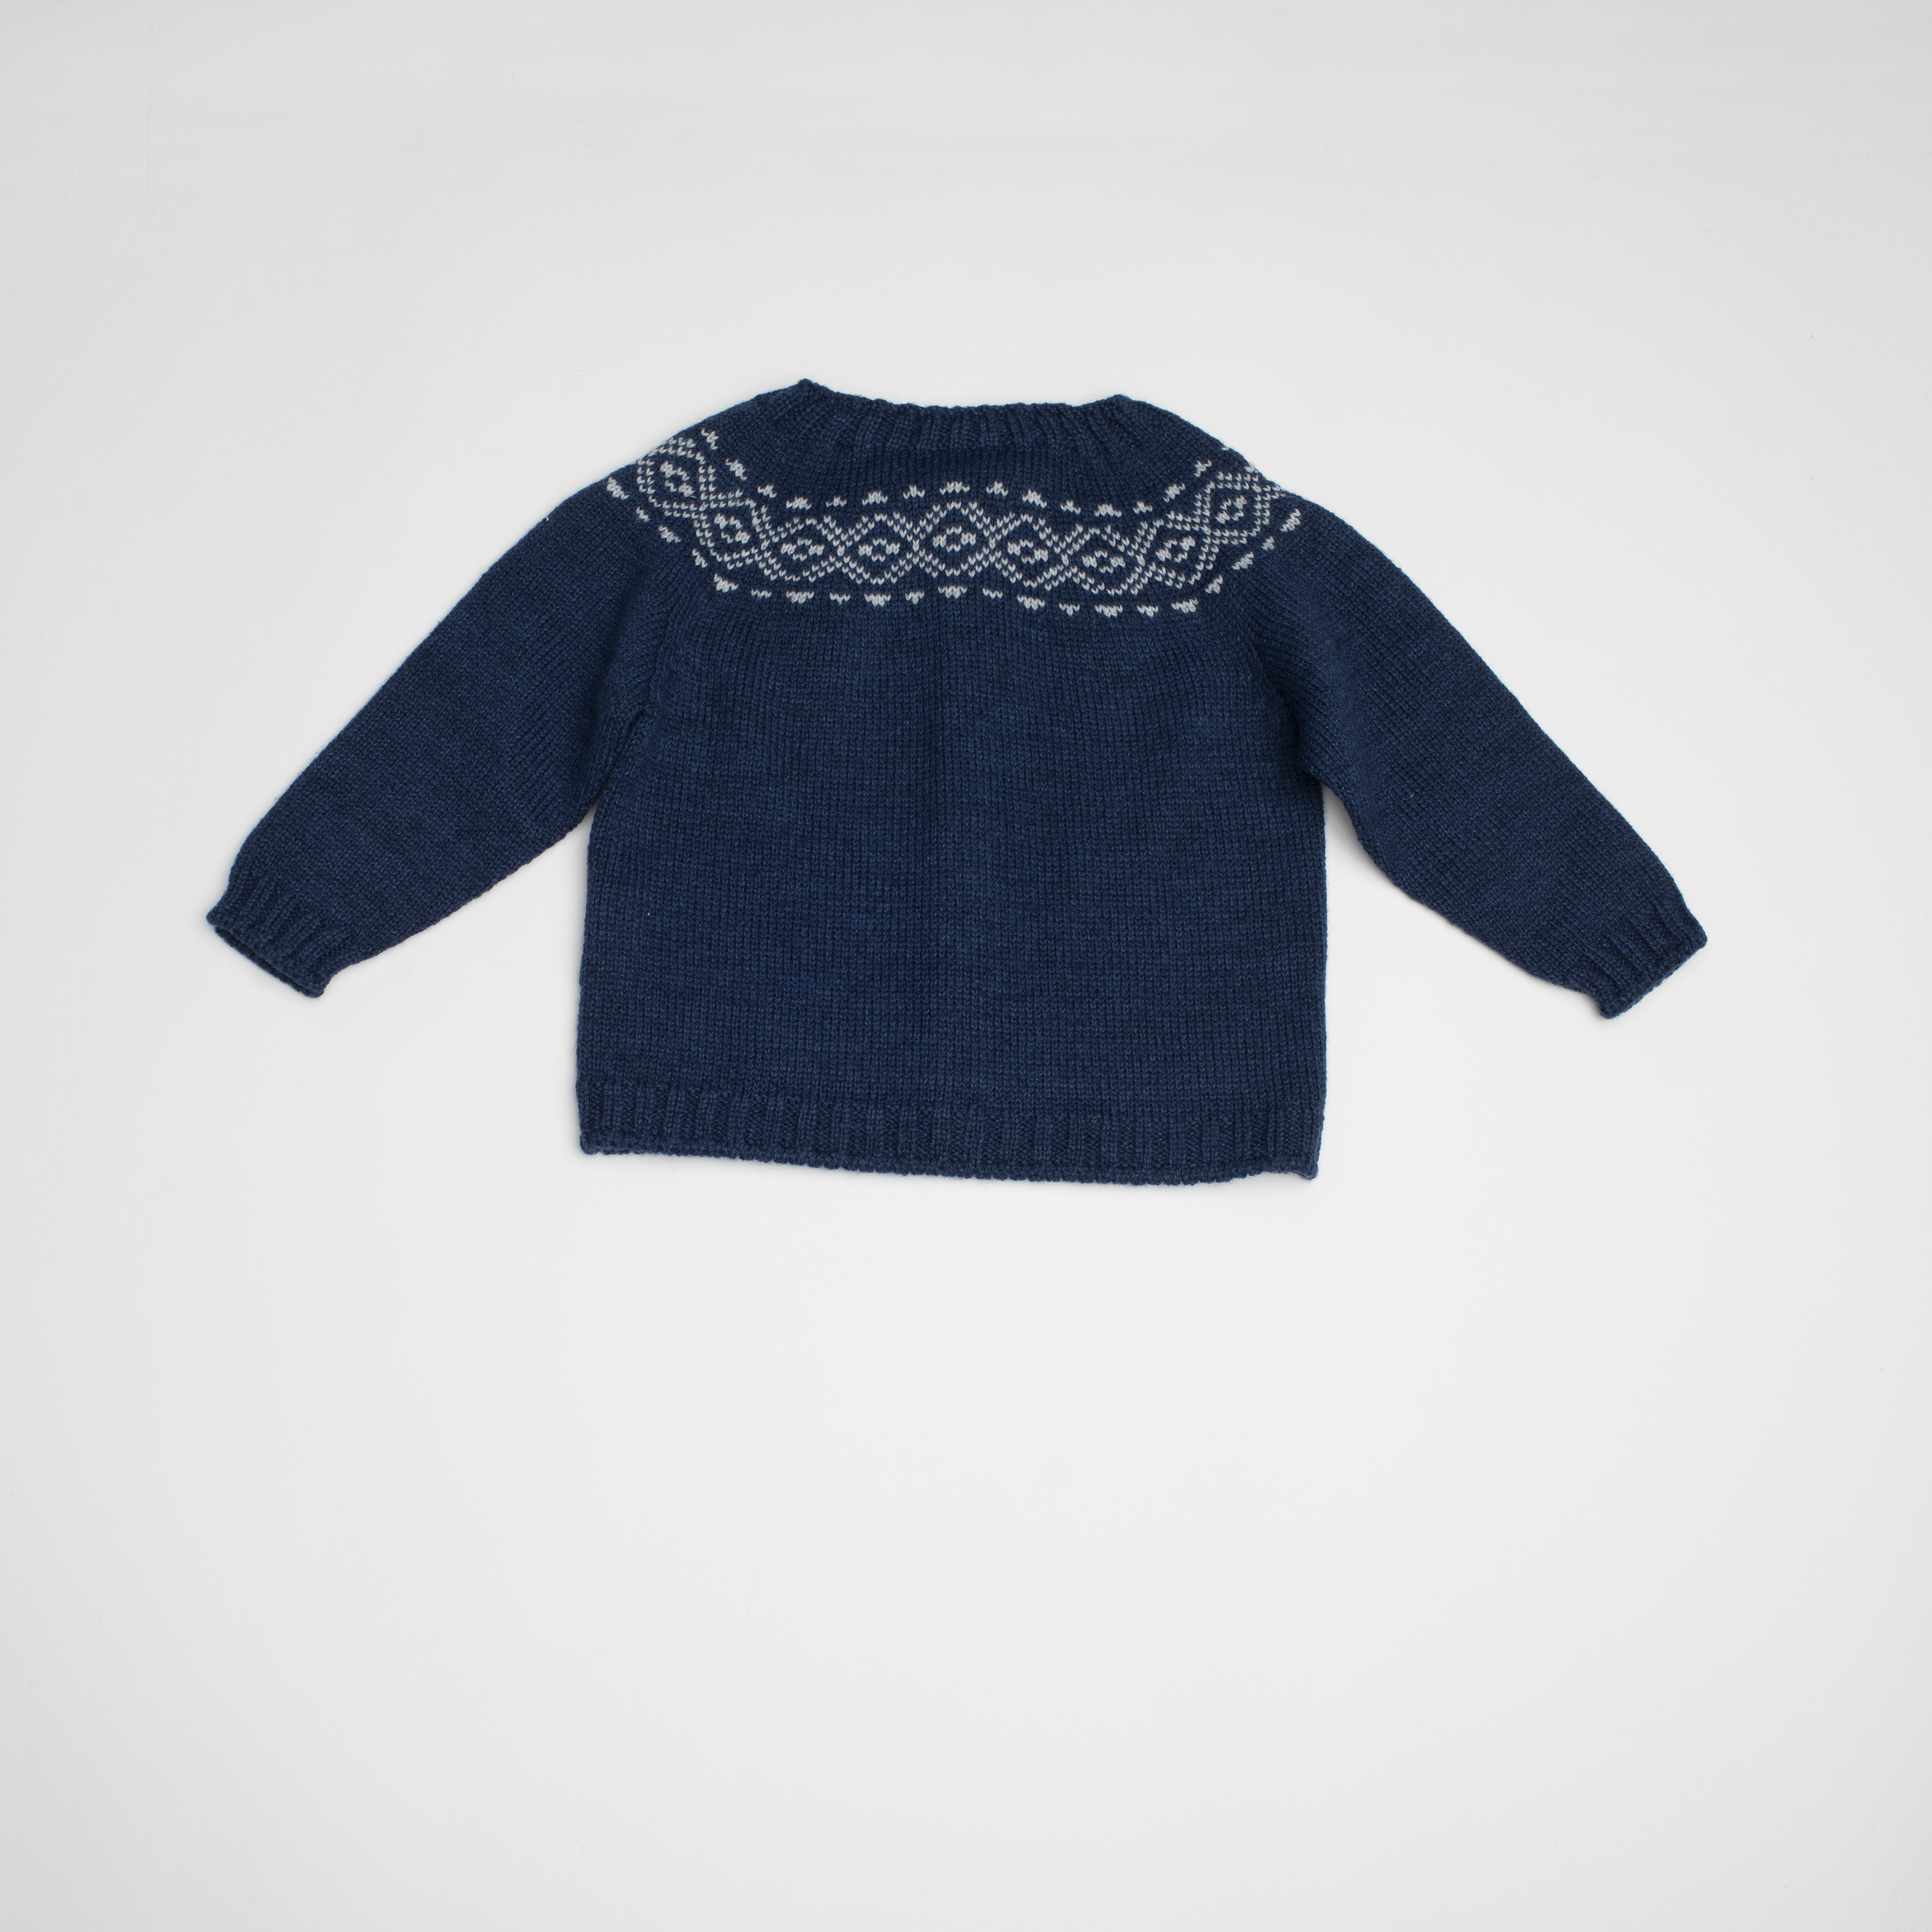 FINA EJERIQUE BOYS NAVY BLUE & WHITE KNITTED GEOMETRICAL PRINT CARDIGAN REF.: A46H06